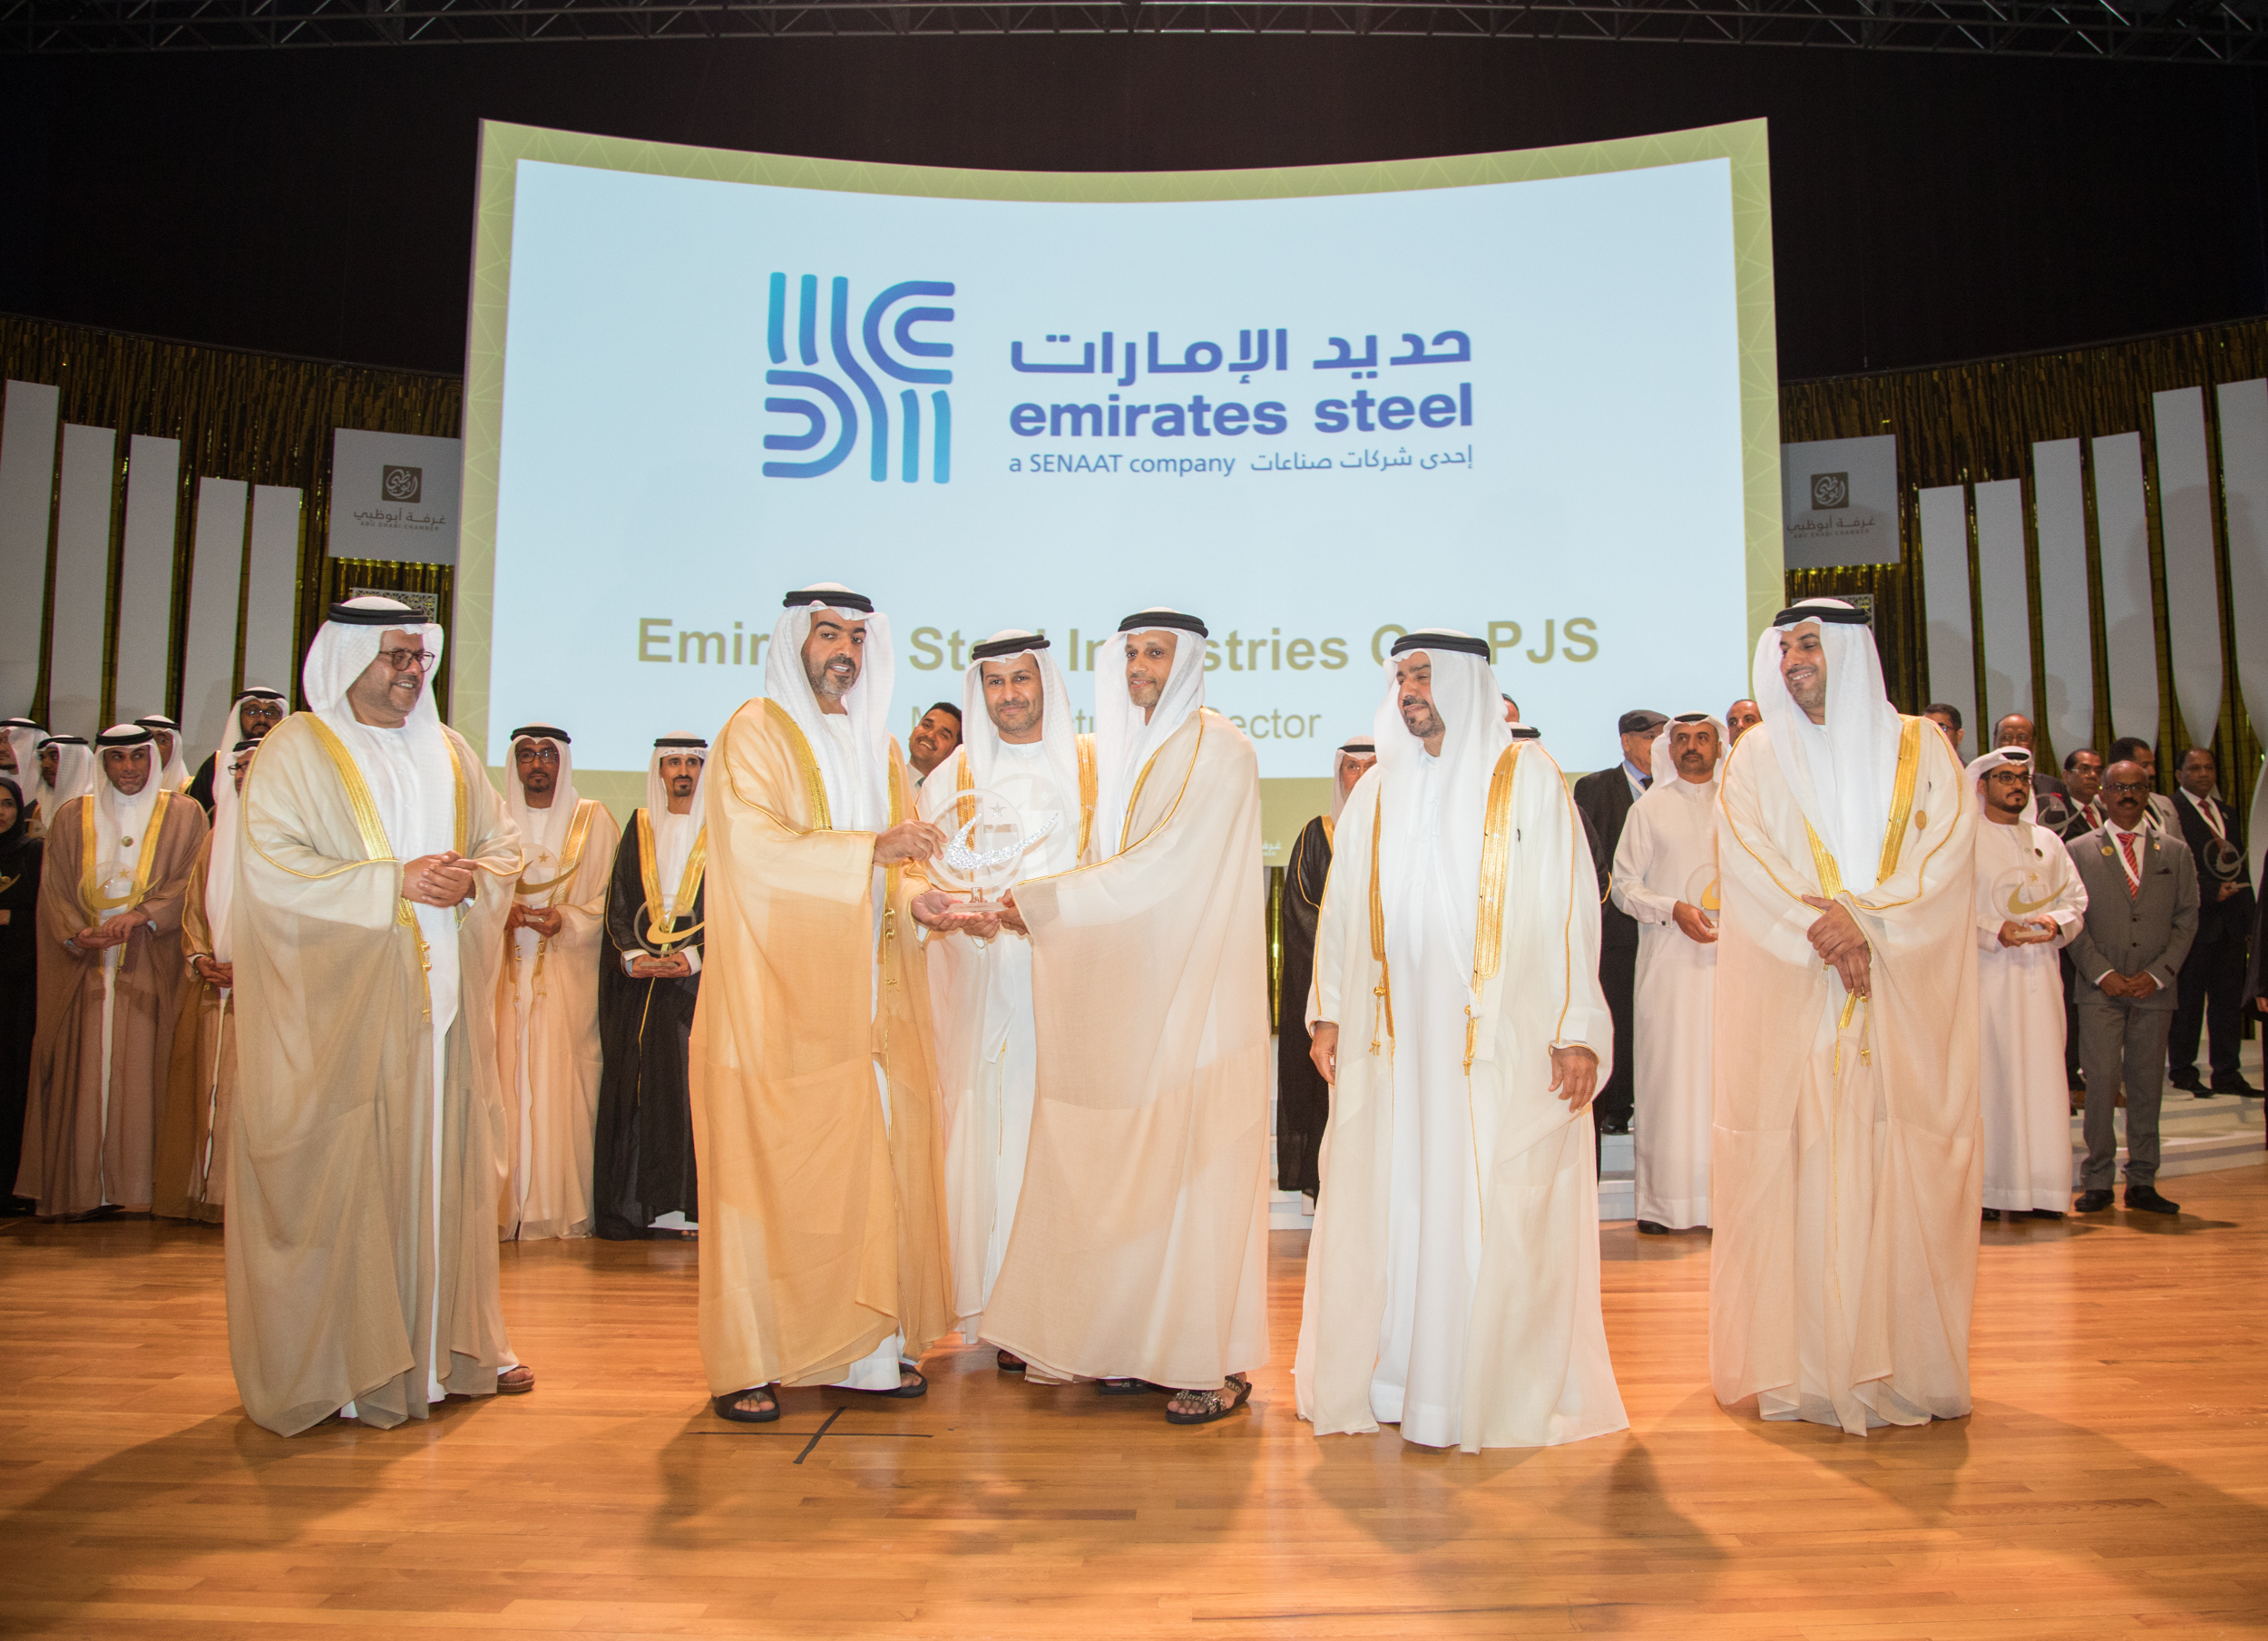 Emirates Steel hails recognition for its role in UAE industrial